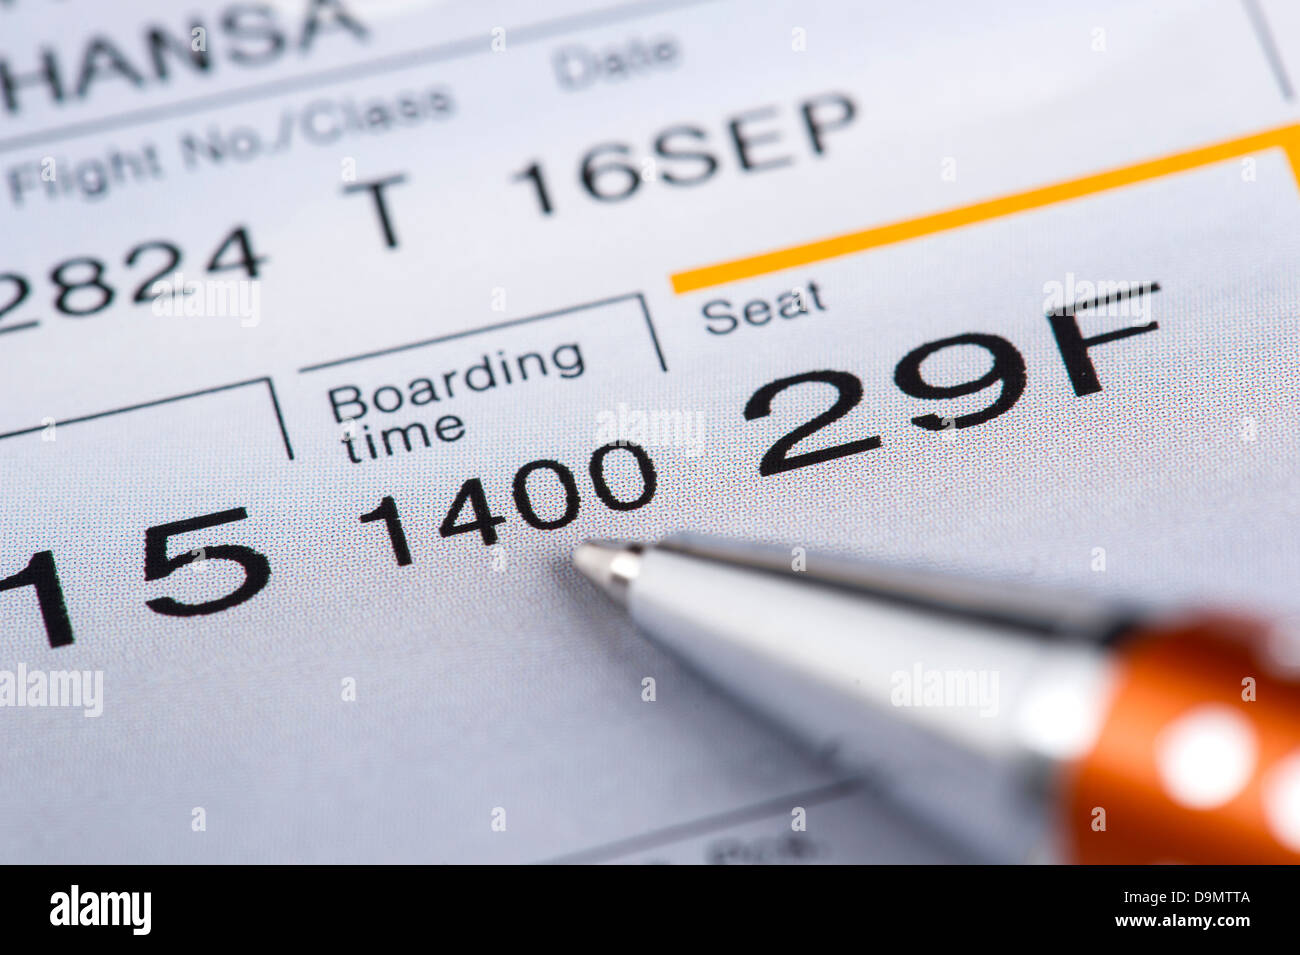 Boarding Card boron thing time - Stock Image